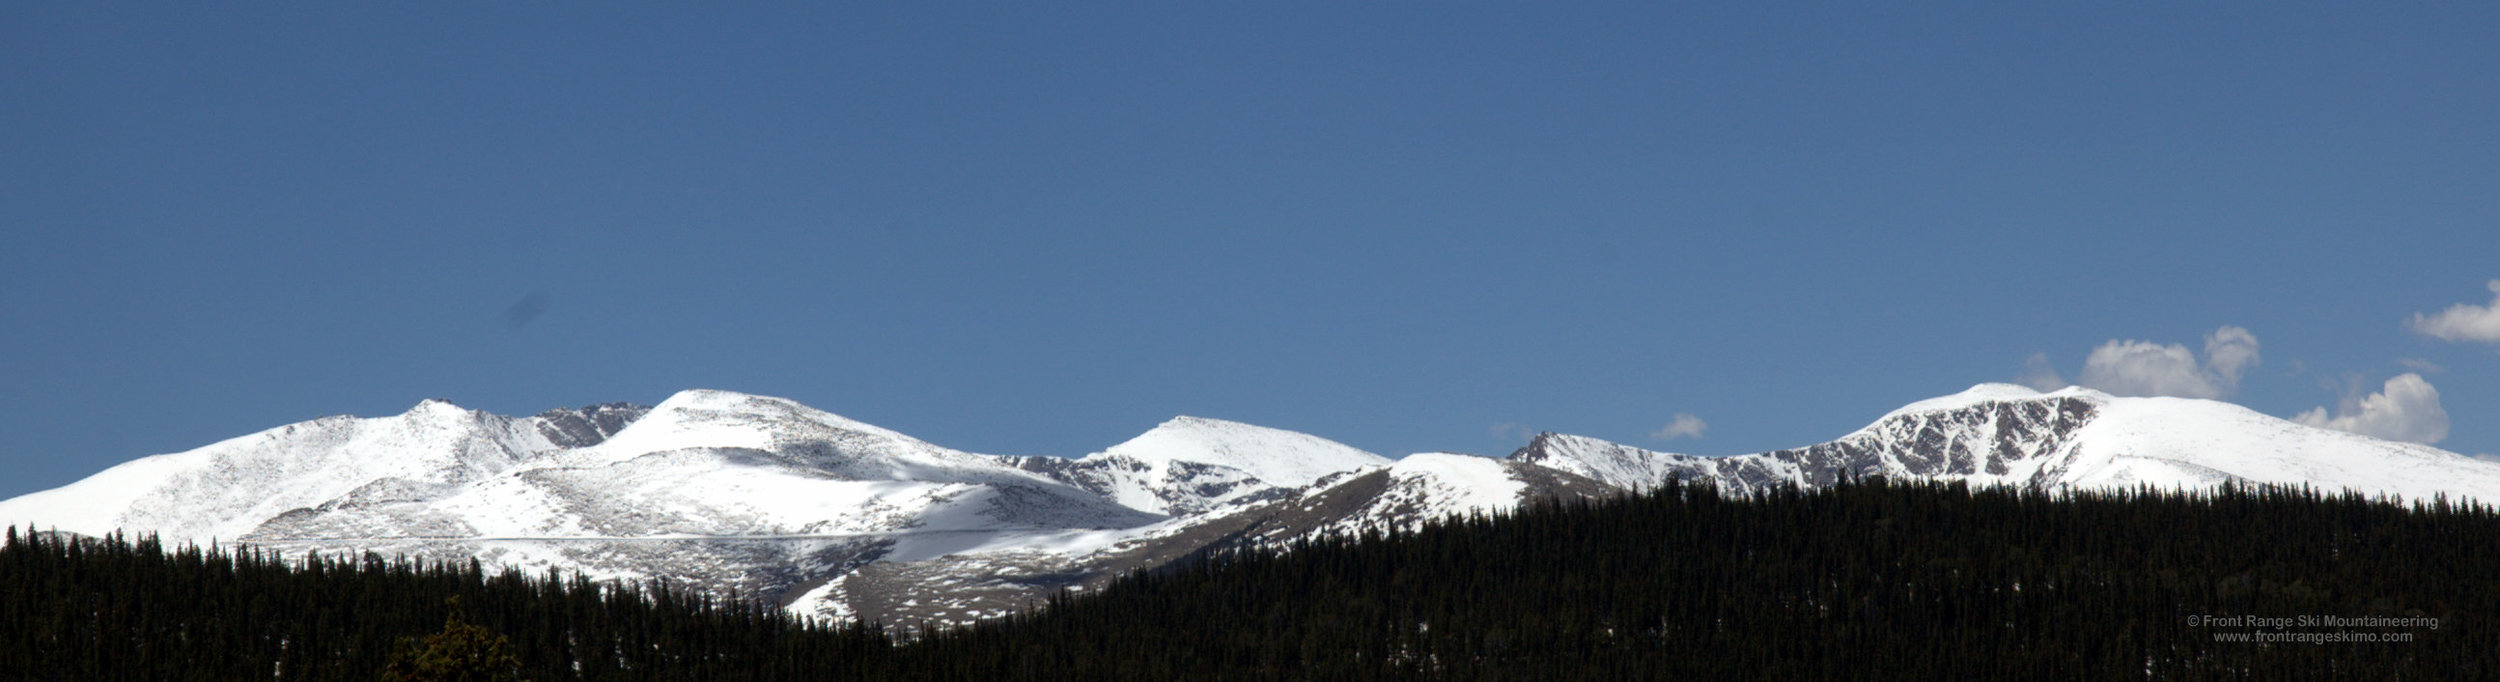 Mount Evans Massif from the north.